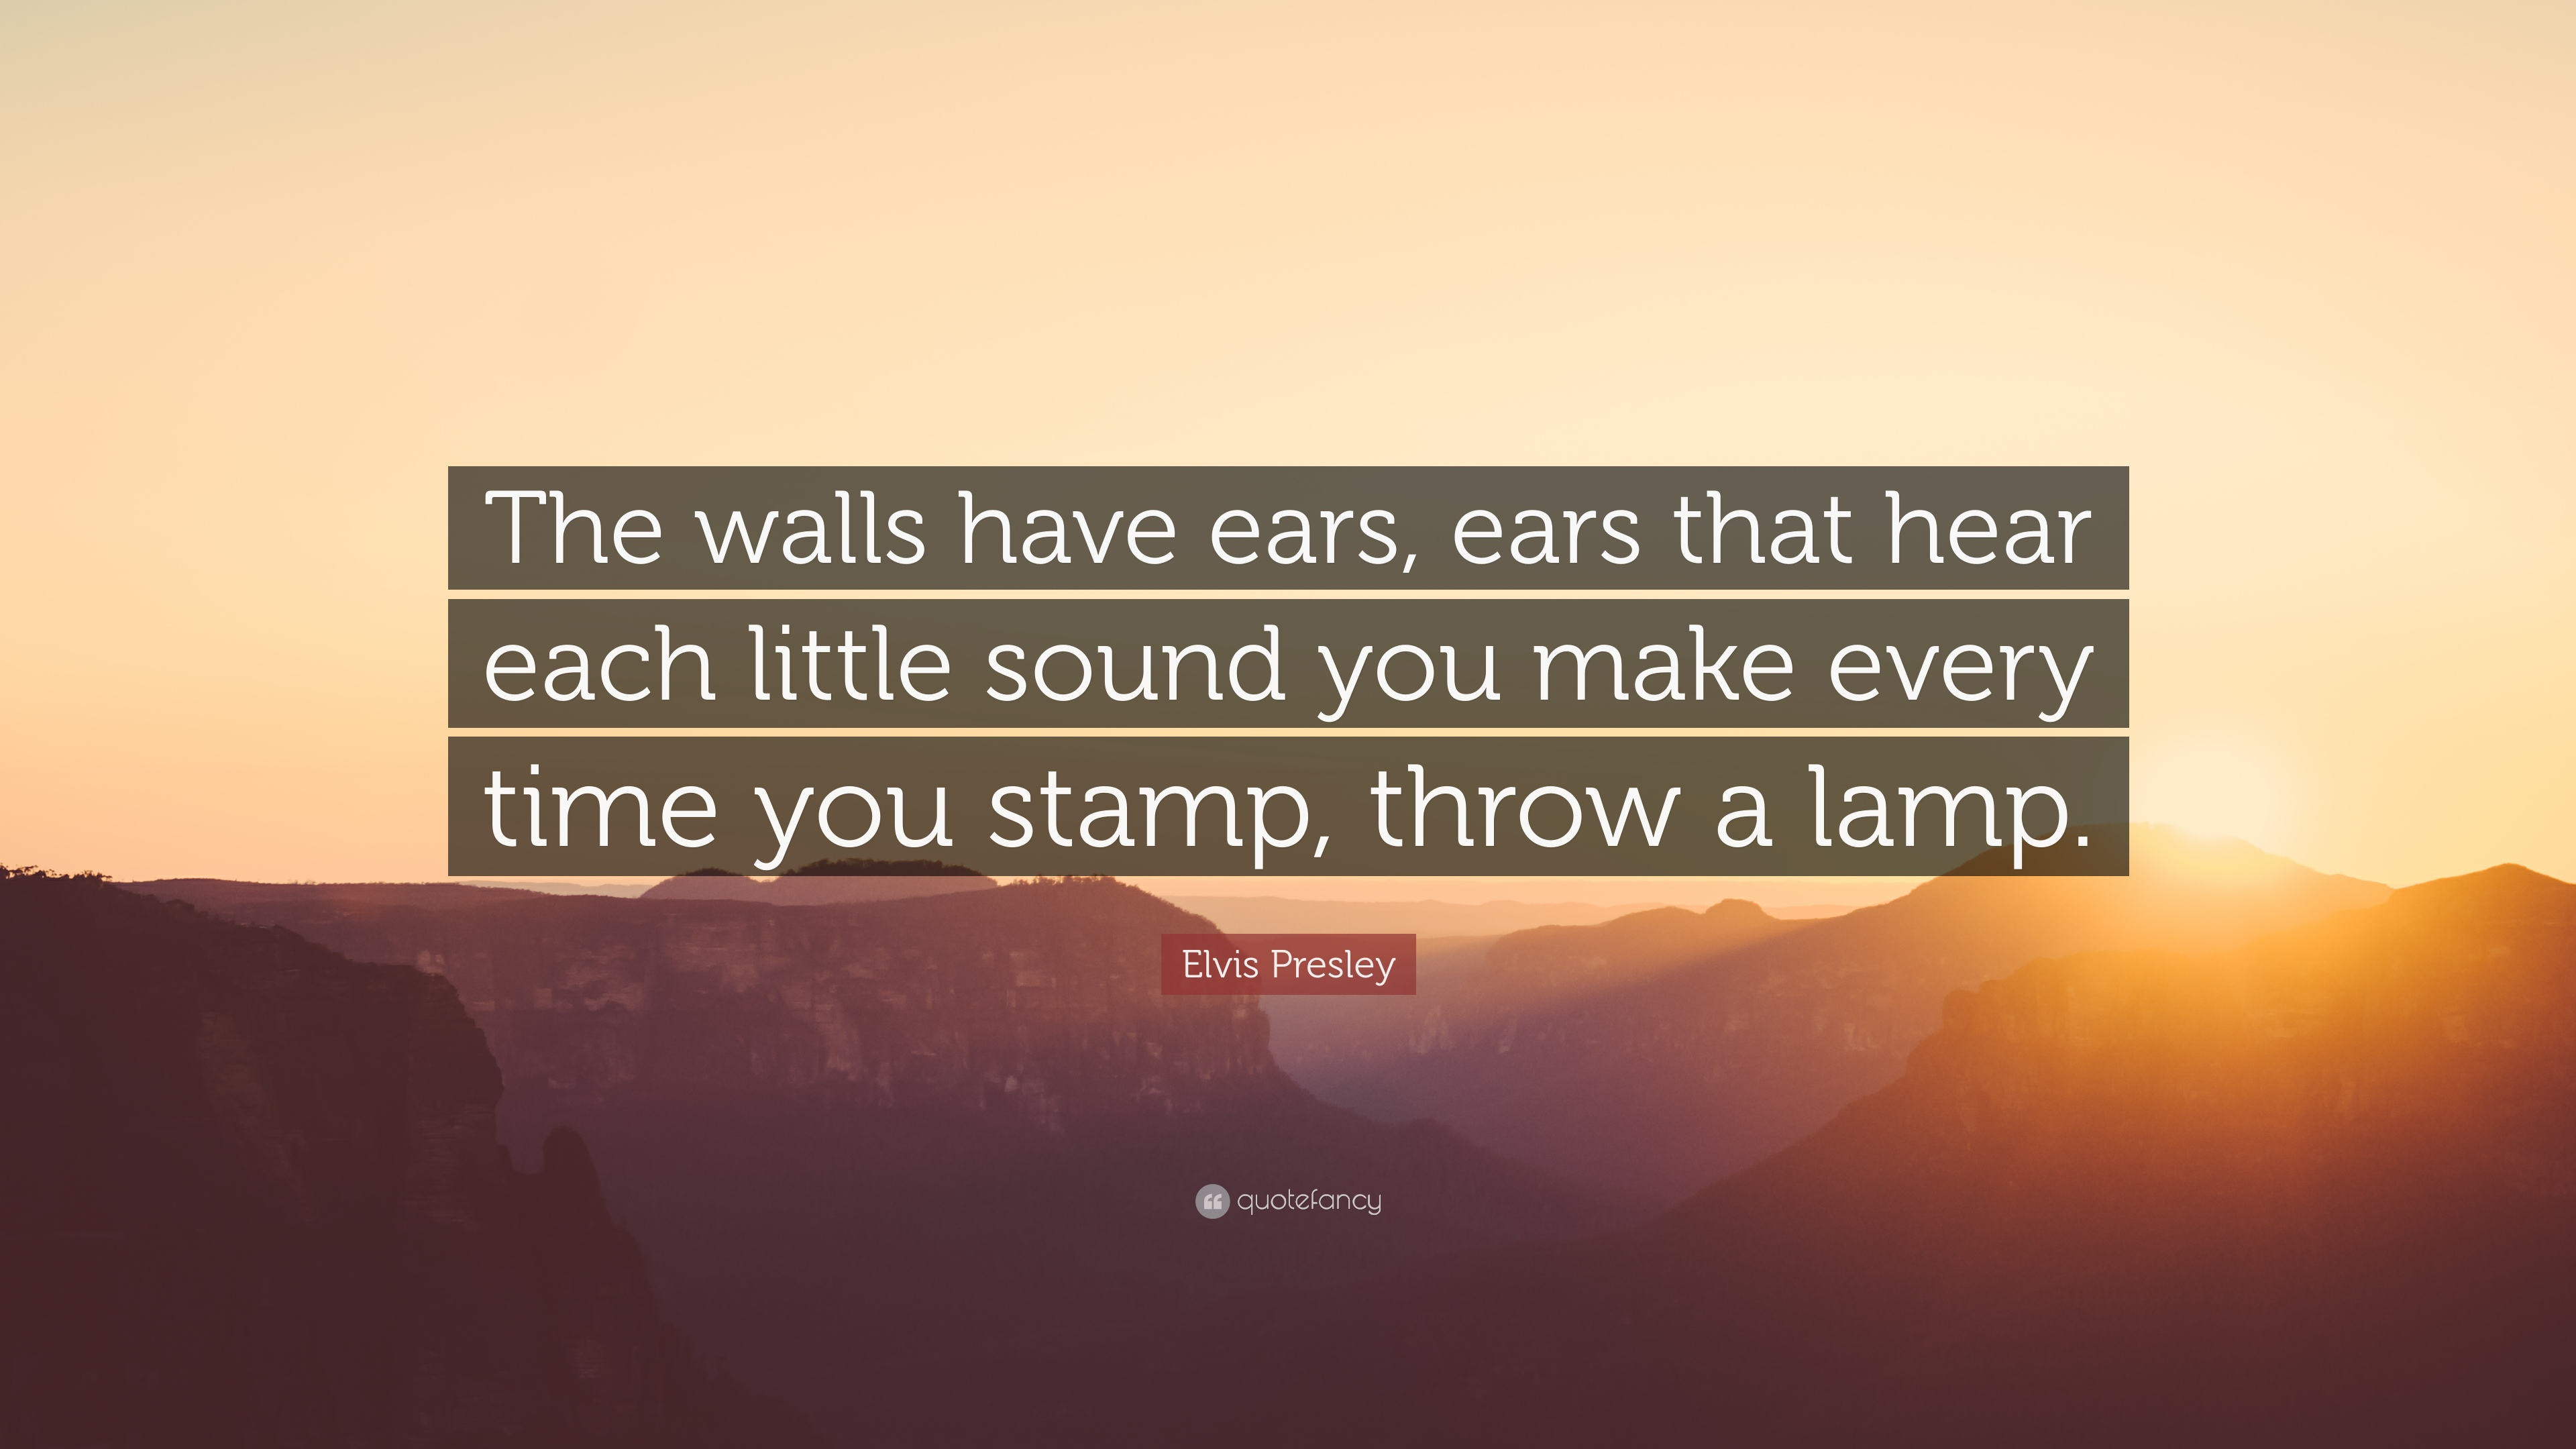 Elvis Presley Quote: U201cThe Walls Have Ears, Ears That Hear Each Little Sound